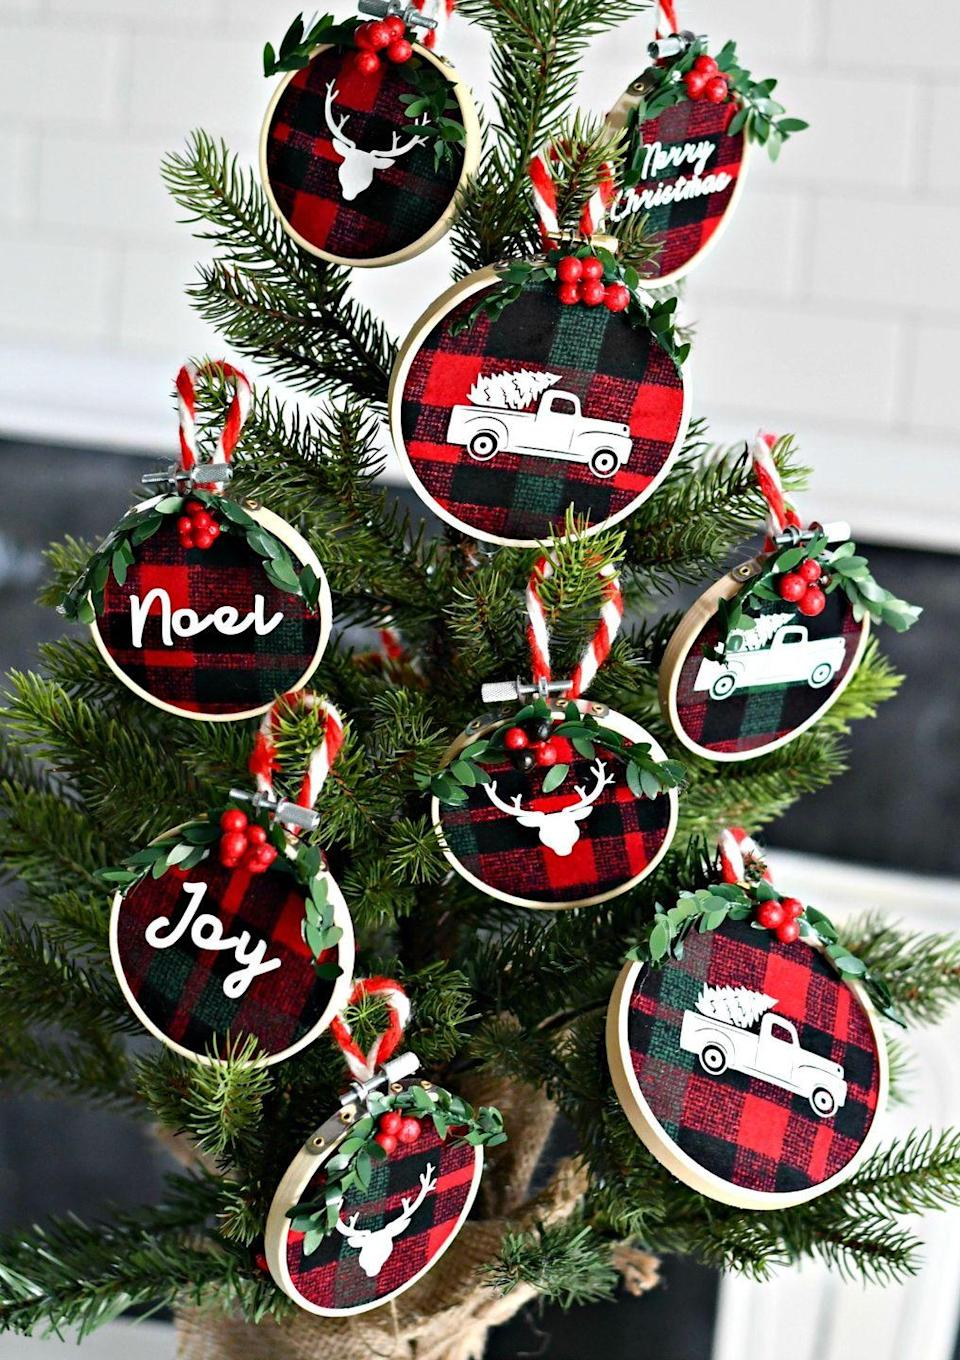 "<p>There's something about flannel that has the word ""Christmas"" written all over it—so what better fabric to incorporate into your ornaments? For another rustic touch, add your favorite iron-on decals.</p><p><strong>Get the tutorial at <a href=""https://hip2save.com/diy/diy-embroidery-hoop-christmas-ornaments/"" rel=""nofollow noopener"" target=""_blank"" data-ylk=""slk:Hip2Save"" class=""link rapid-noclick-resp"">Hip2Save</a>.</strong></p><p><a class=""link rapid-noclick-resp"" href=""https://www.amazon.com/Robert-Kaufman-Mammoth-Flannel-Buffalo/dp/B0130EH33Y/ref=sr_1_3?tag=syn-yahoo-20&ascsubtag=%5Bartid%7C10050.g.1070%5Bsrc%7Cyahoo-us"" rel=""nofollow noopener"" target=""_blank"" data-ylk=""slk:SHOP FLANNEL FABRIC"">SHOP FLANNEL FABRIC</a></p>"